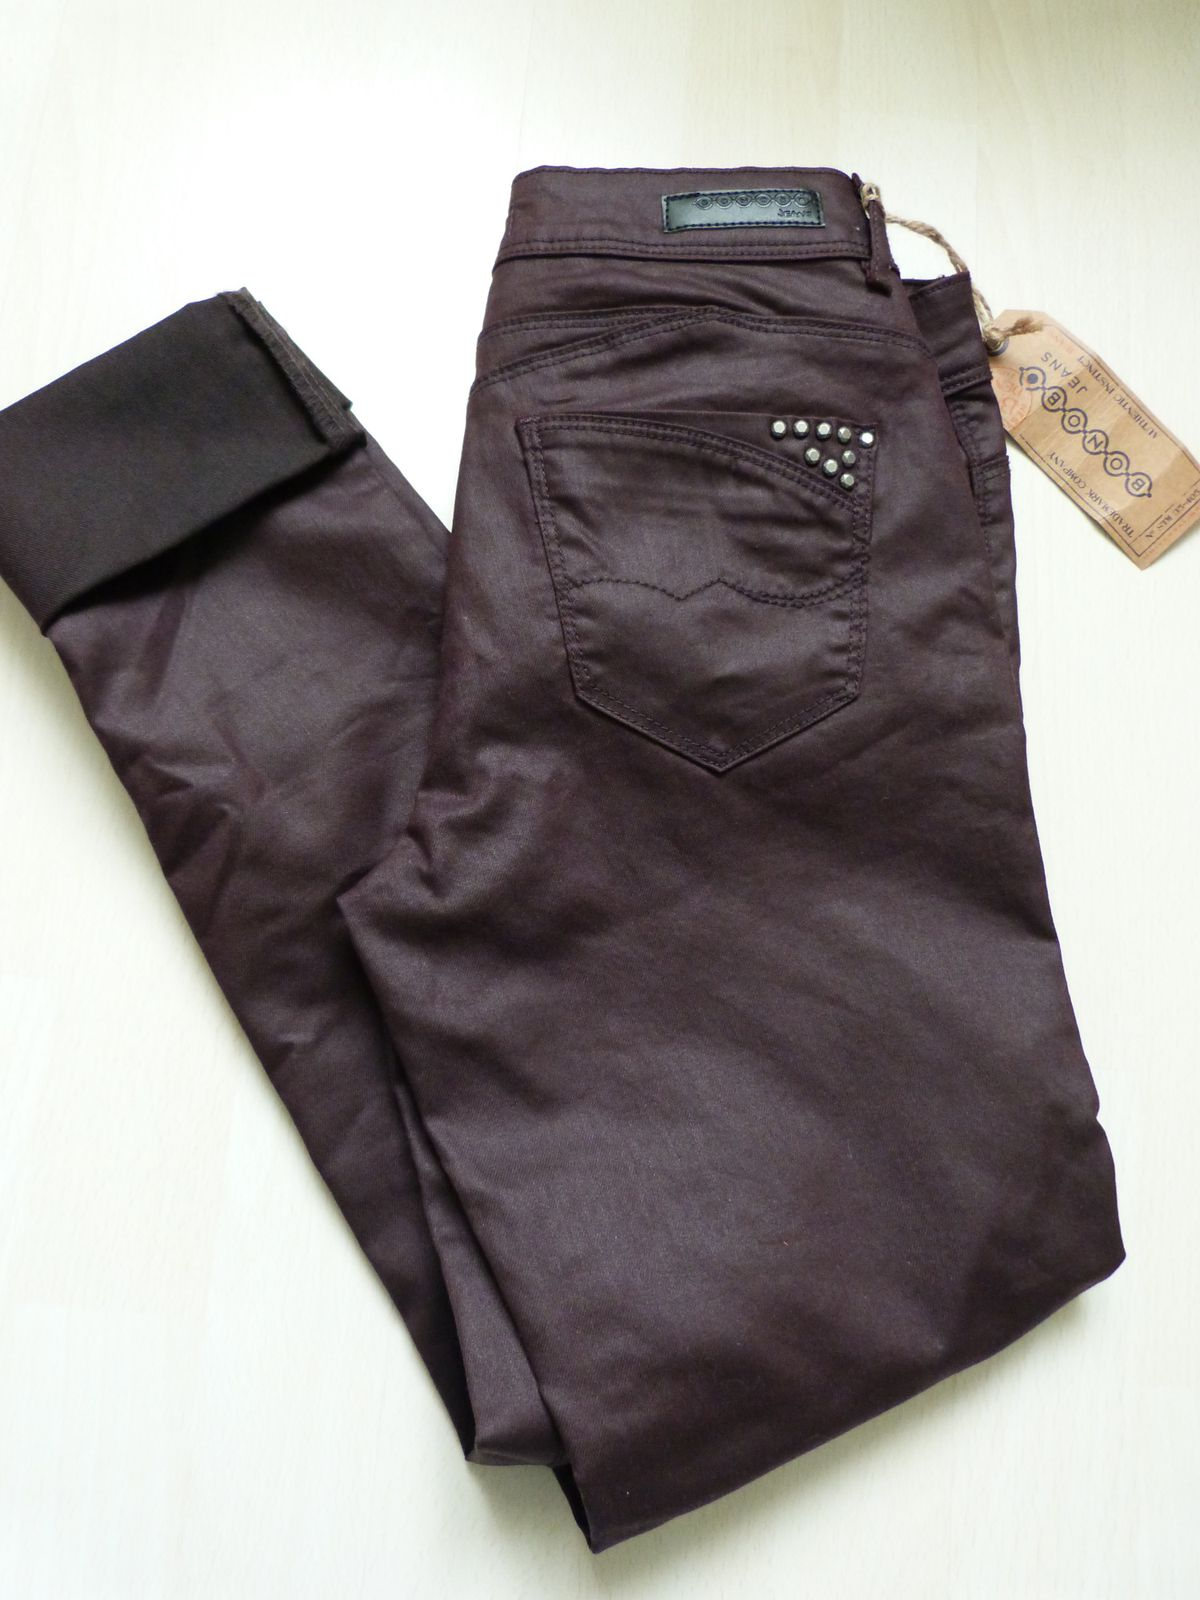 pantalon :BONOBO  top: Het M , bottines GEMO.